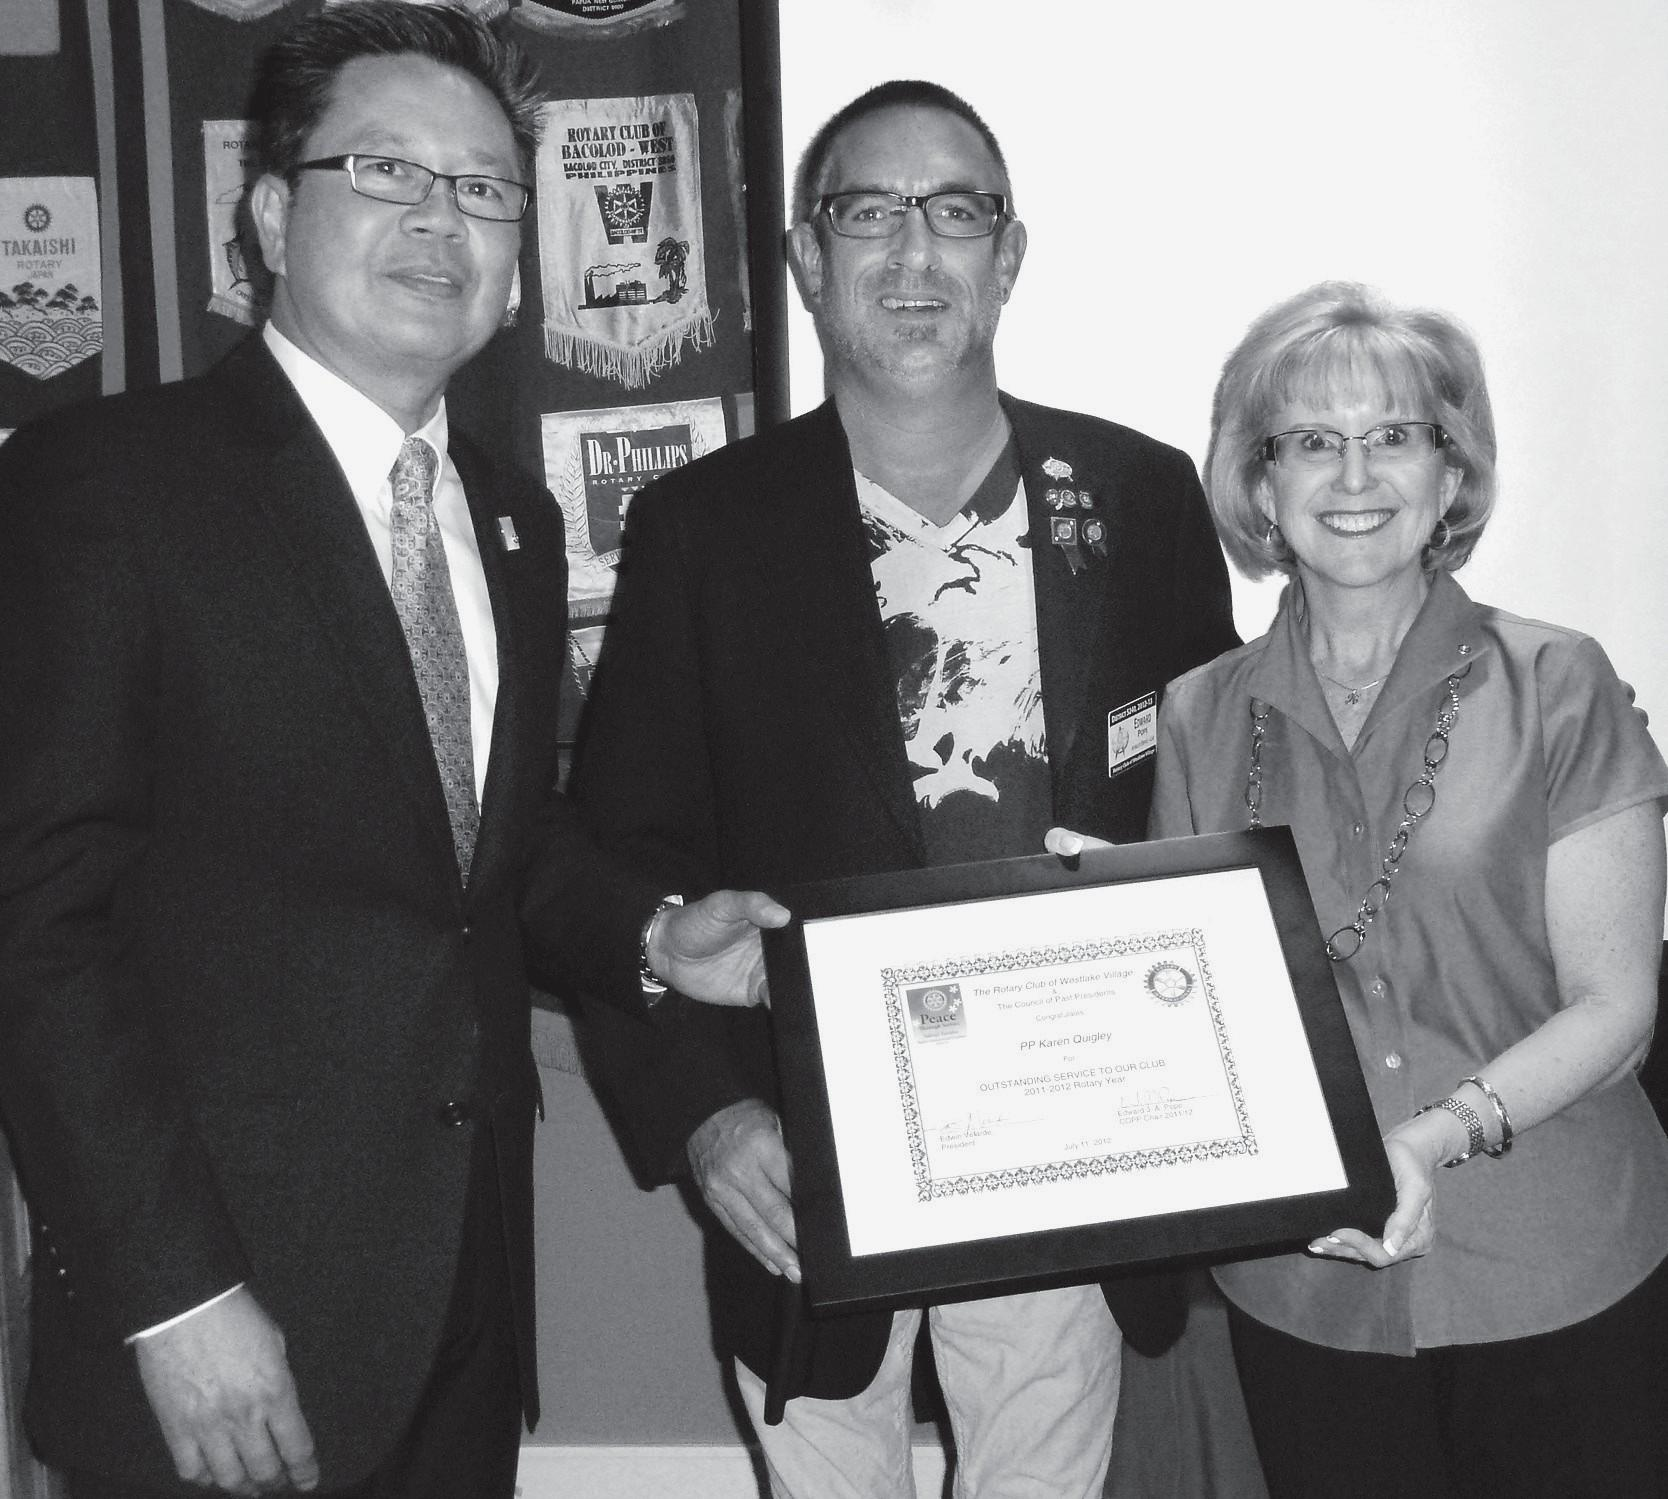 PASSING THE TORCH—New Westlake Village Rotary Club President Edwin Velarde joins past presidents Ed Pope and Karen Quigley.